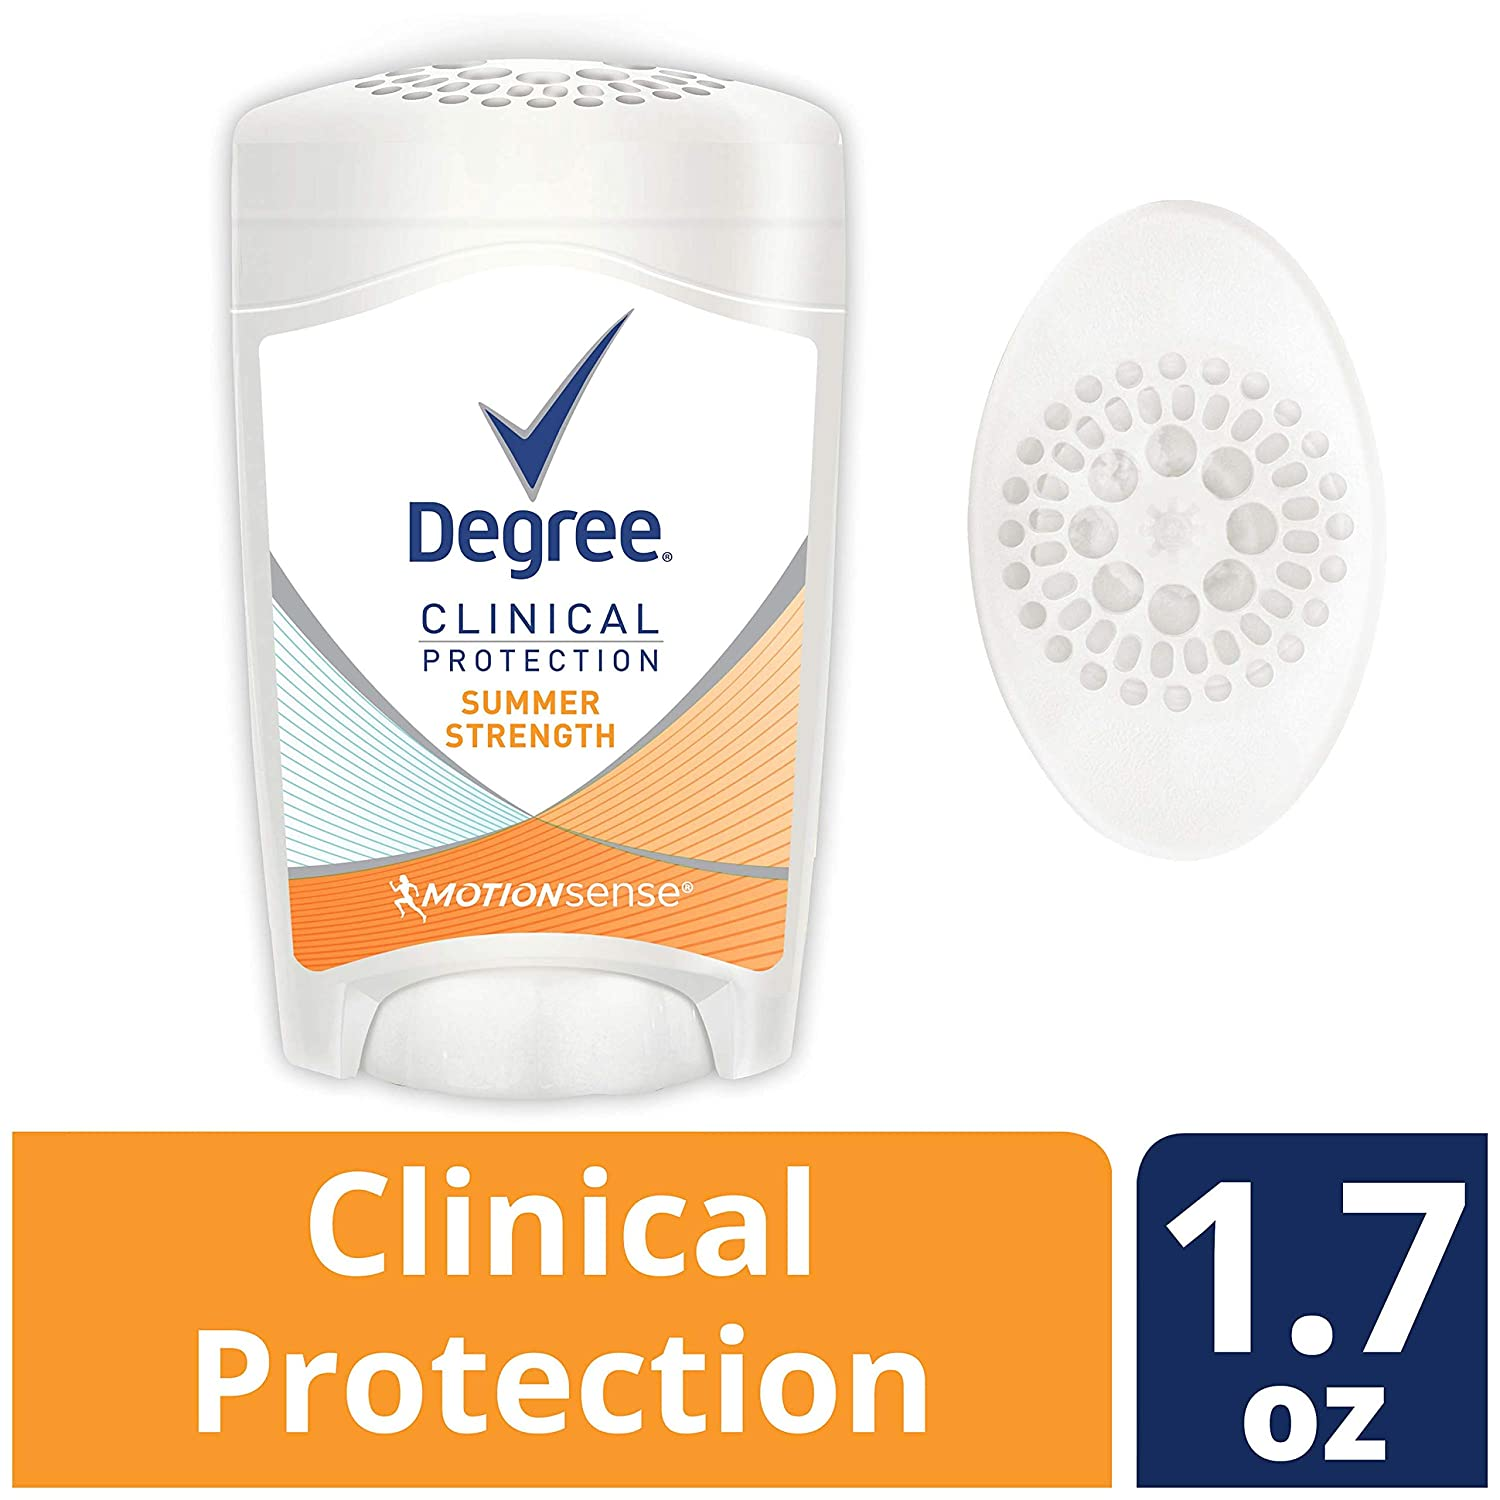 Degree Women Clinical Antiperspirant Deodorant, Summer Strength